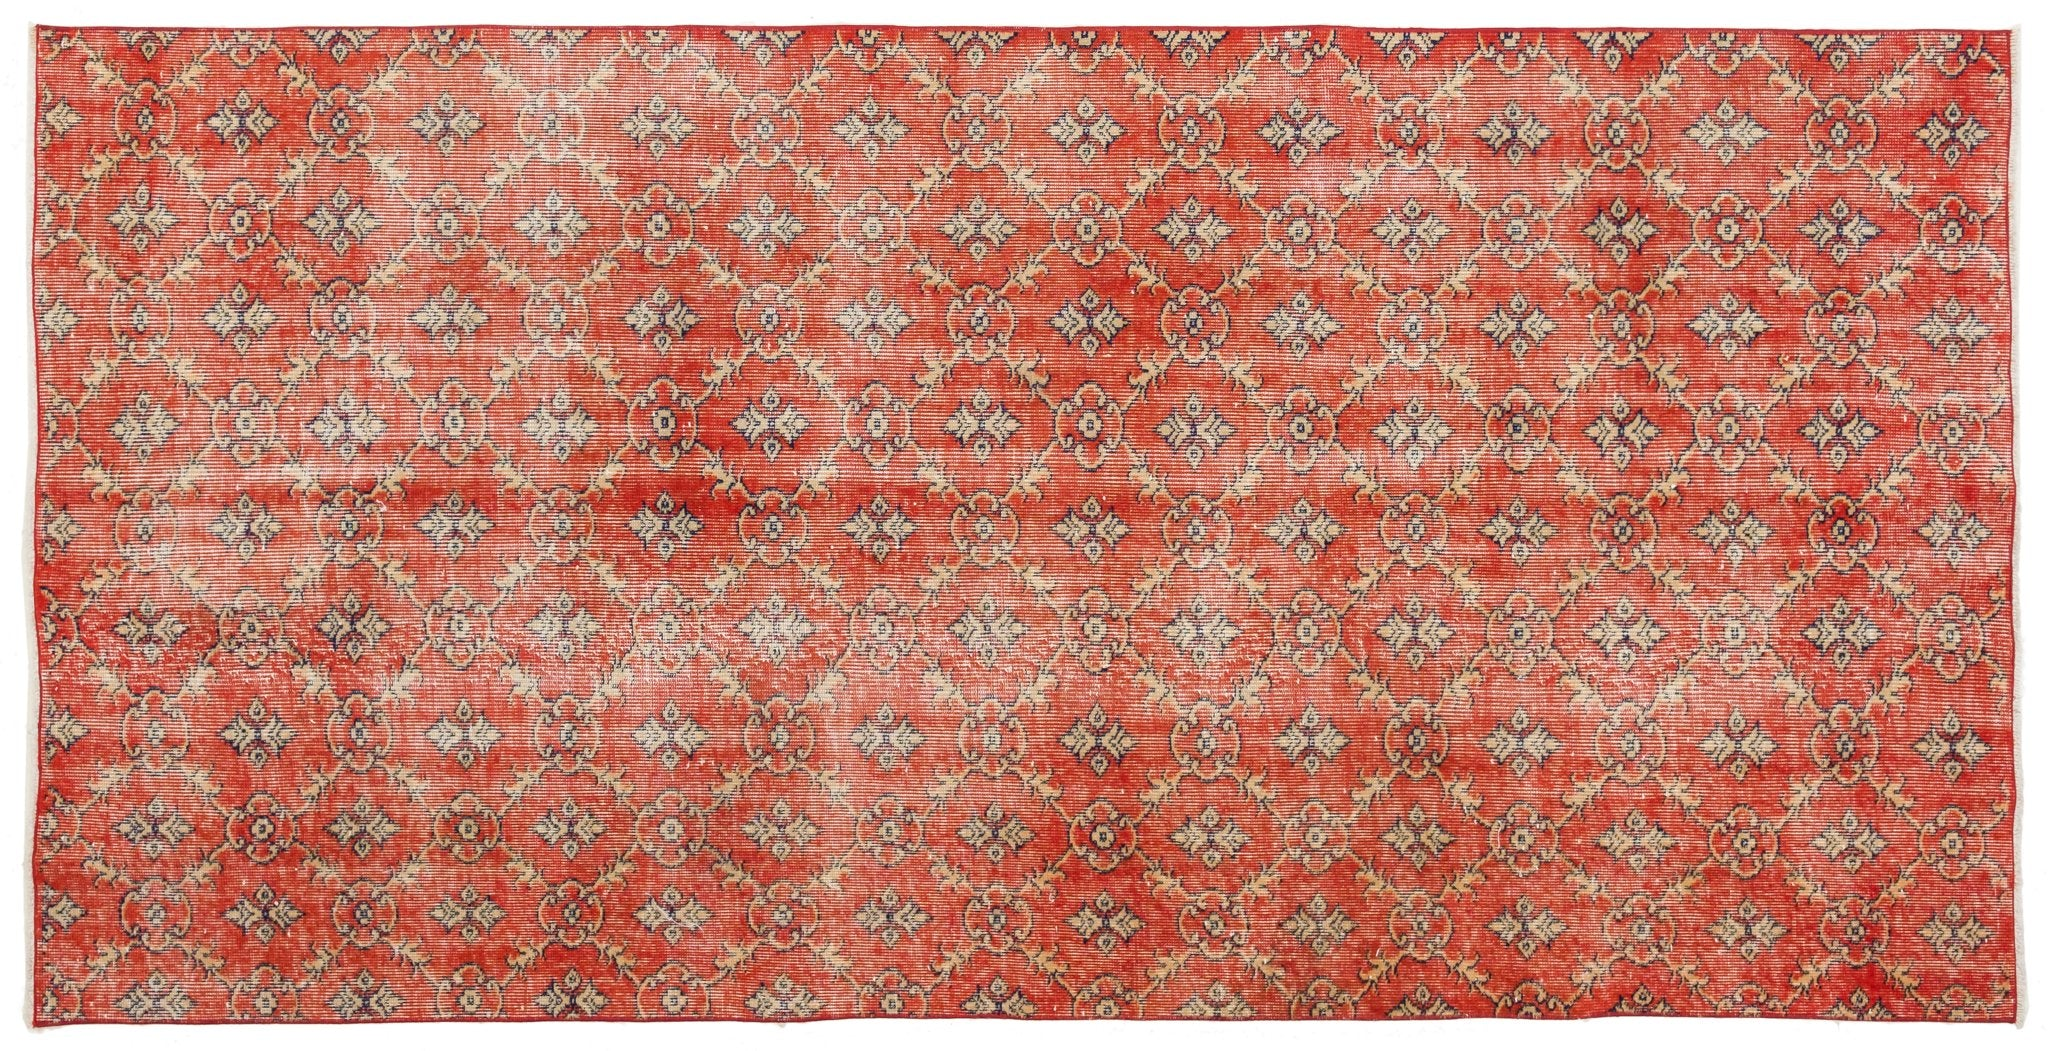 Vintage Turkish Rug Aldesino